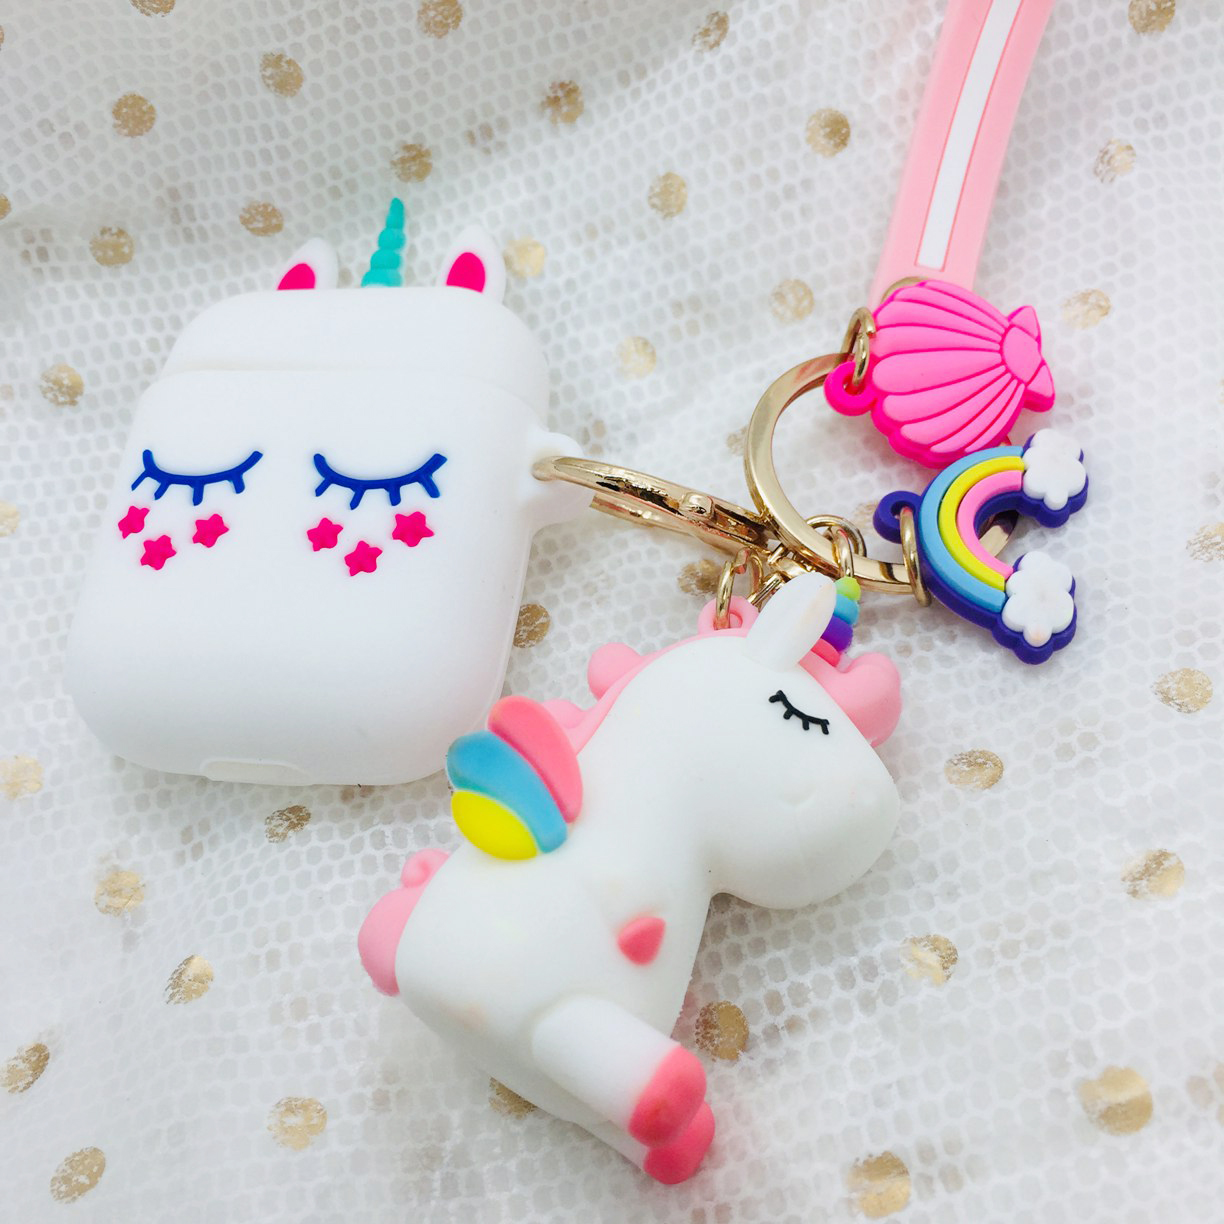 For airpods Case Cute Cartoon with lanyard Case For airpods 2 silicon Cover Wireless Earphone Case For air pods 2 airpods case